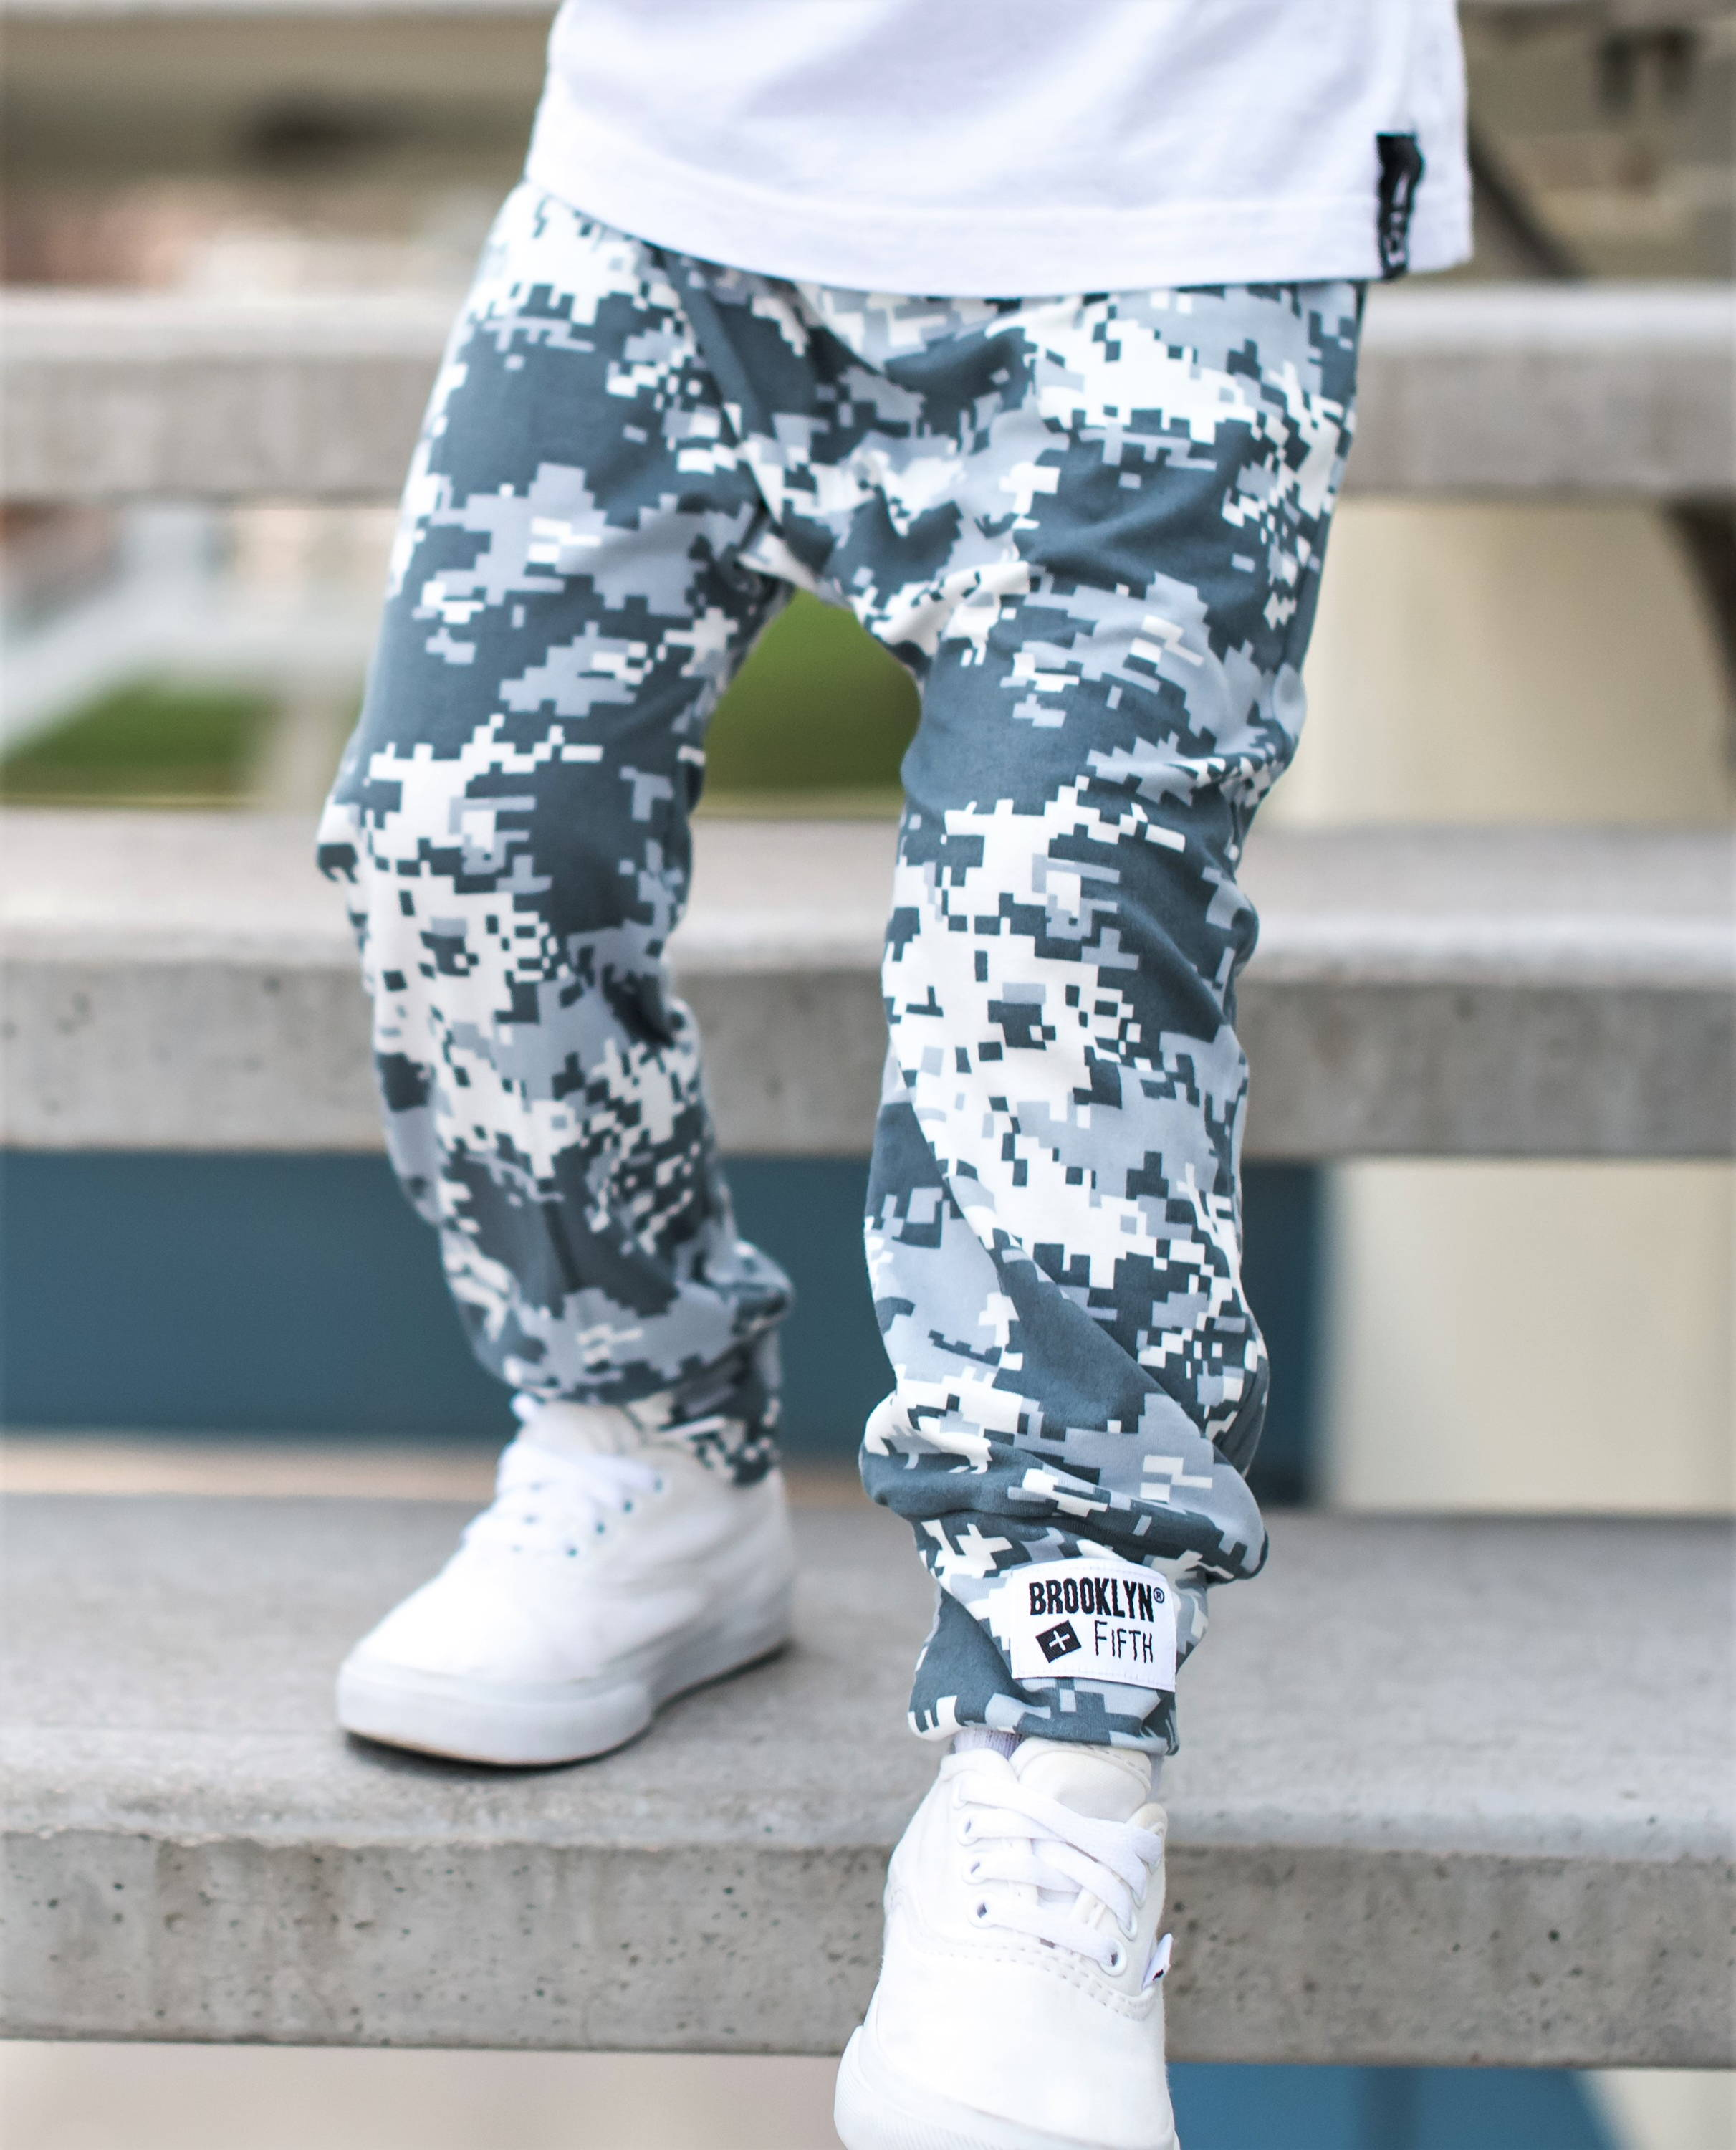 Brooklyn + Fifth Toddler Camo Harem Pants. Stylish Toddler Pants. Camo Pants for boys. Soft toddler Pants. Infant Camo Pants. Baby Pants. Baby Camo Pants. Kids Pants. Made in the USA!